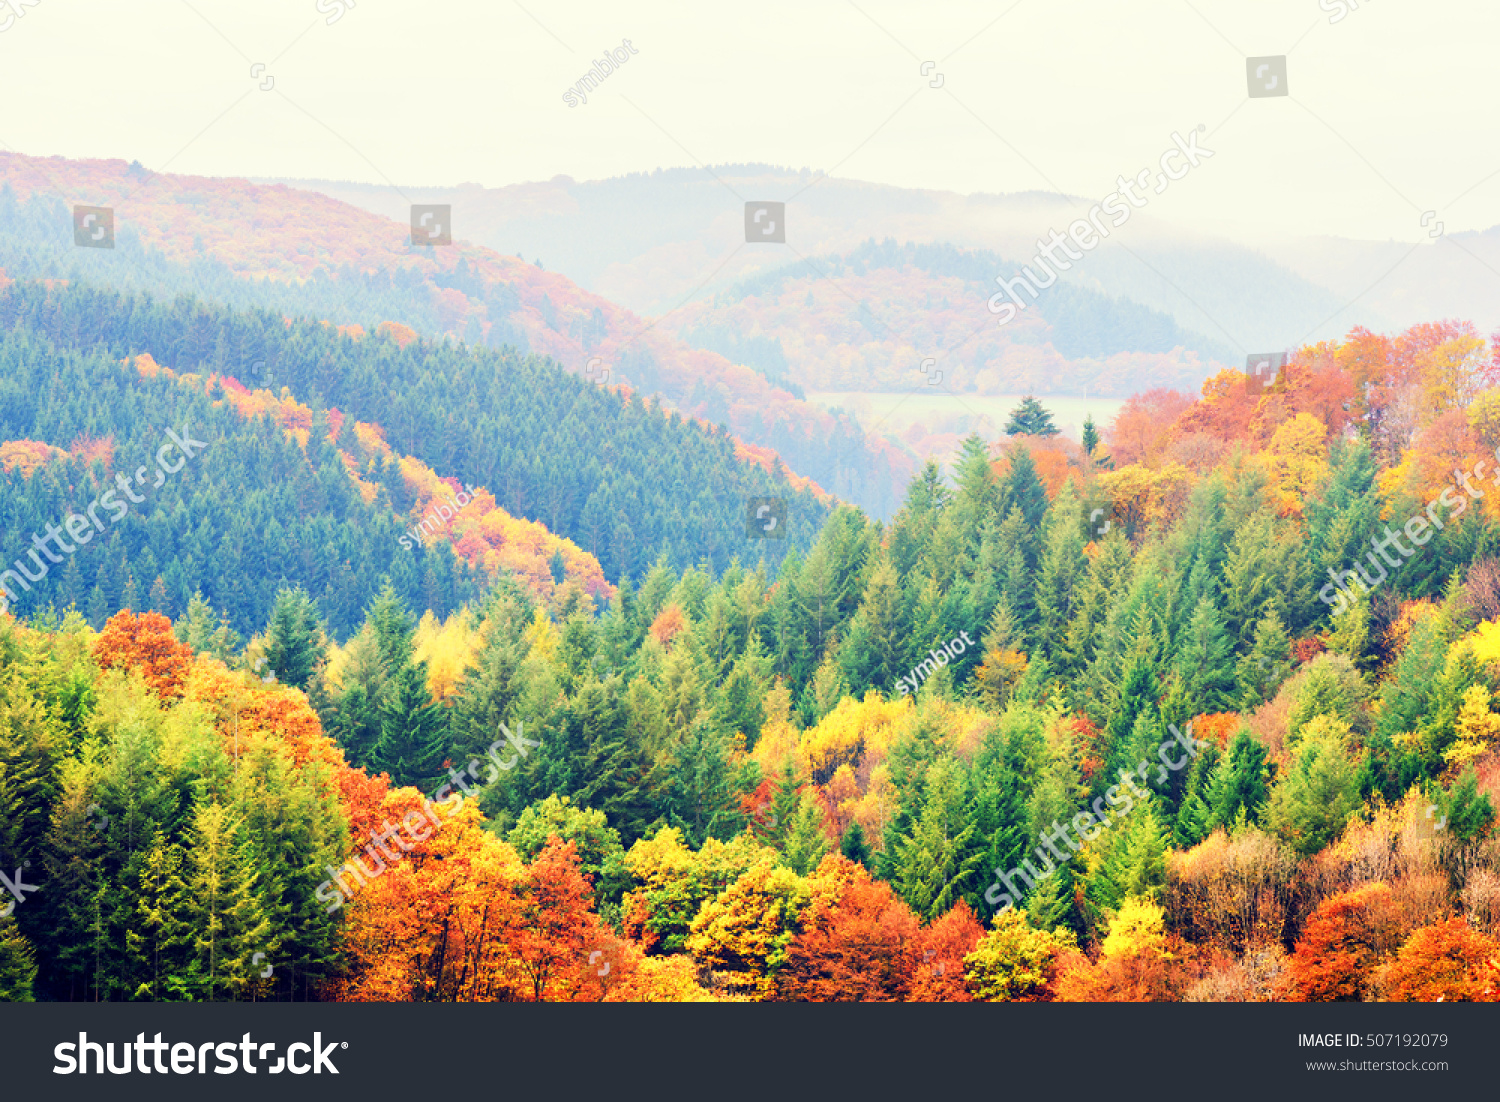 Autumn Landscape Colorful Fall Trees Top Stock Photo (Royalty Free ...